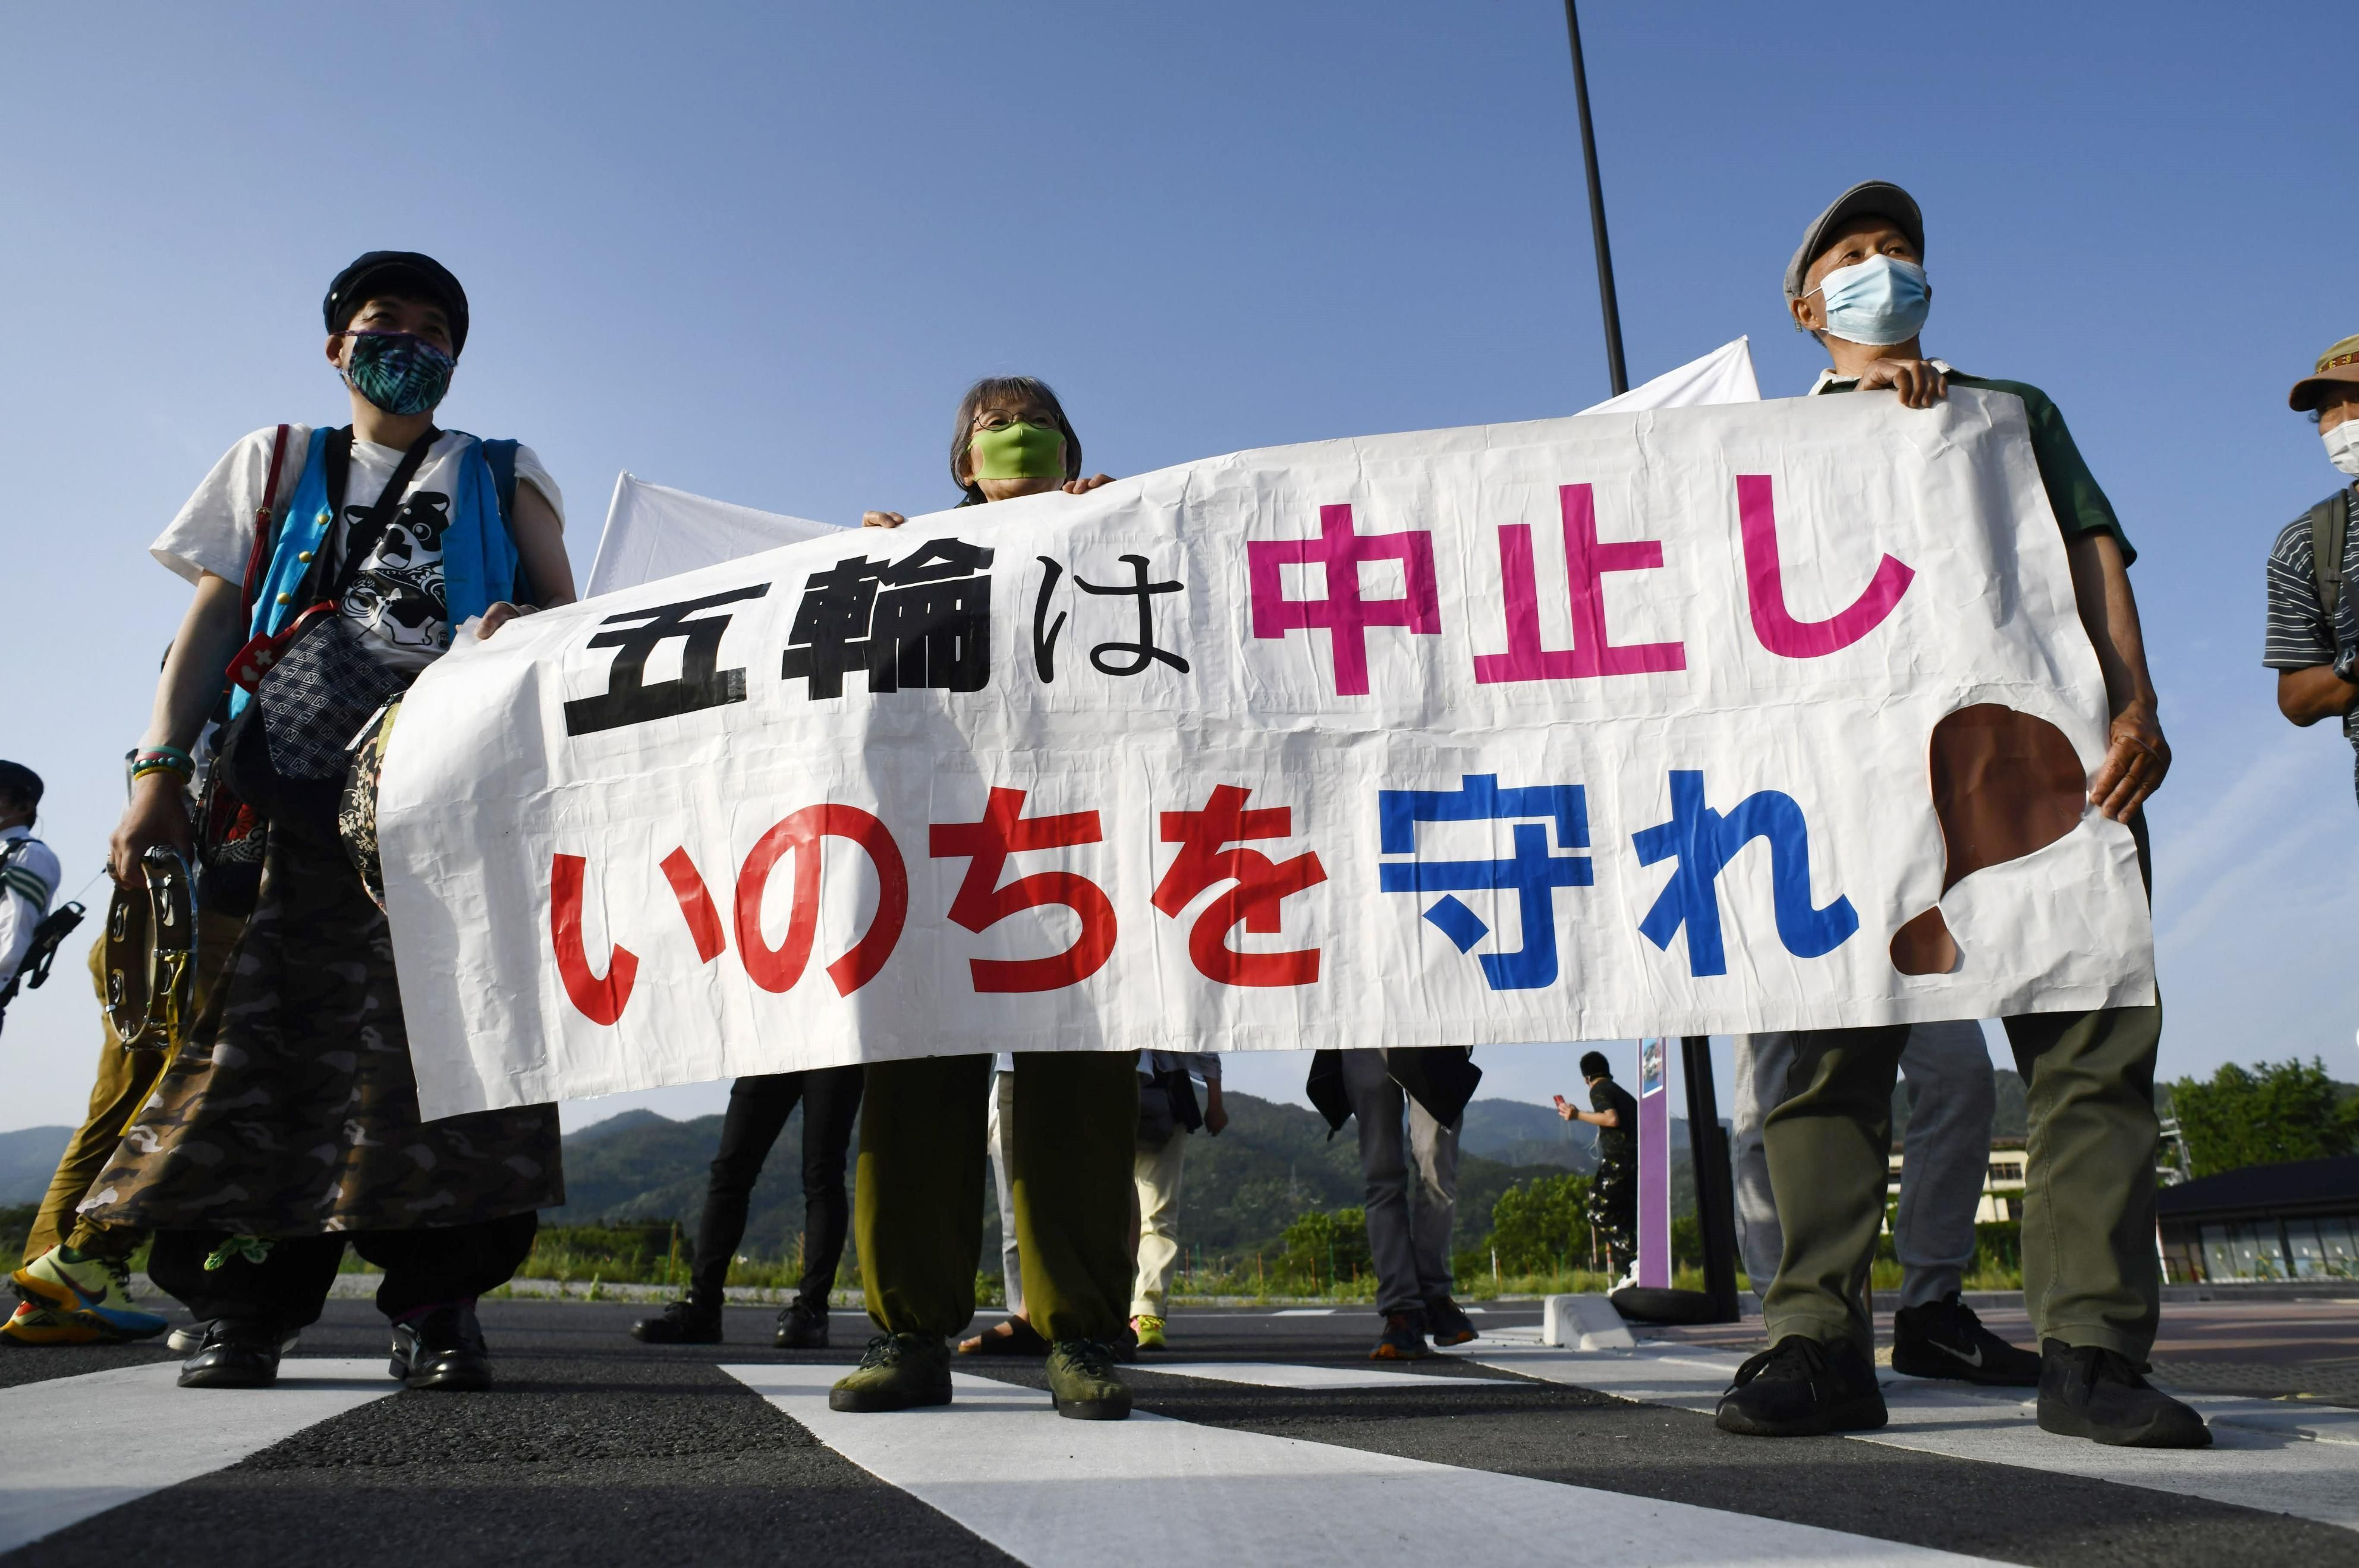 Demonstrators stage a protest in front of Sanga Stadium in the Kyoto Prefecture city of Kameoka, western Japan, on May 25, 2021, against the Tokyo Olympics amid the coronavirus pandemic. The Olympic torch relay was held inside the stadium the same day